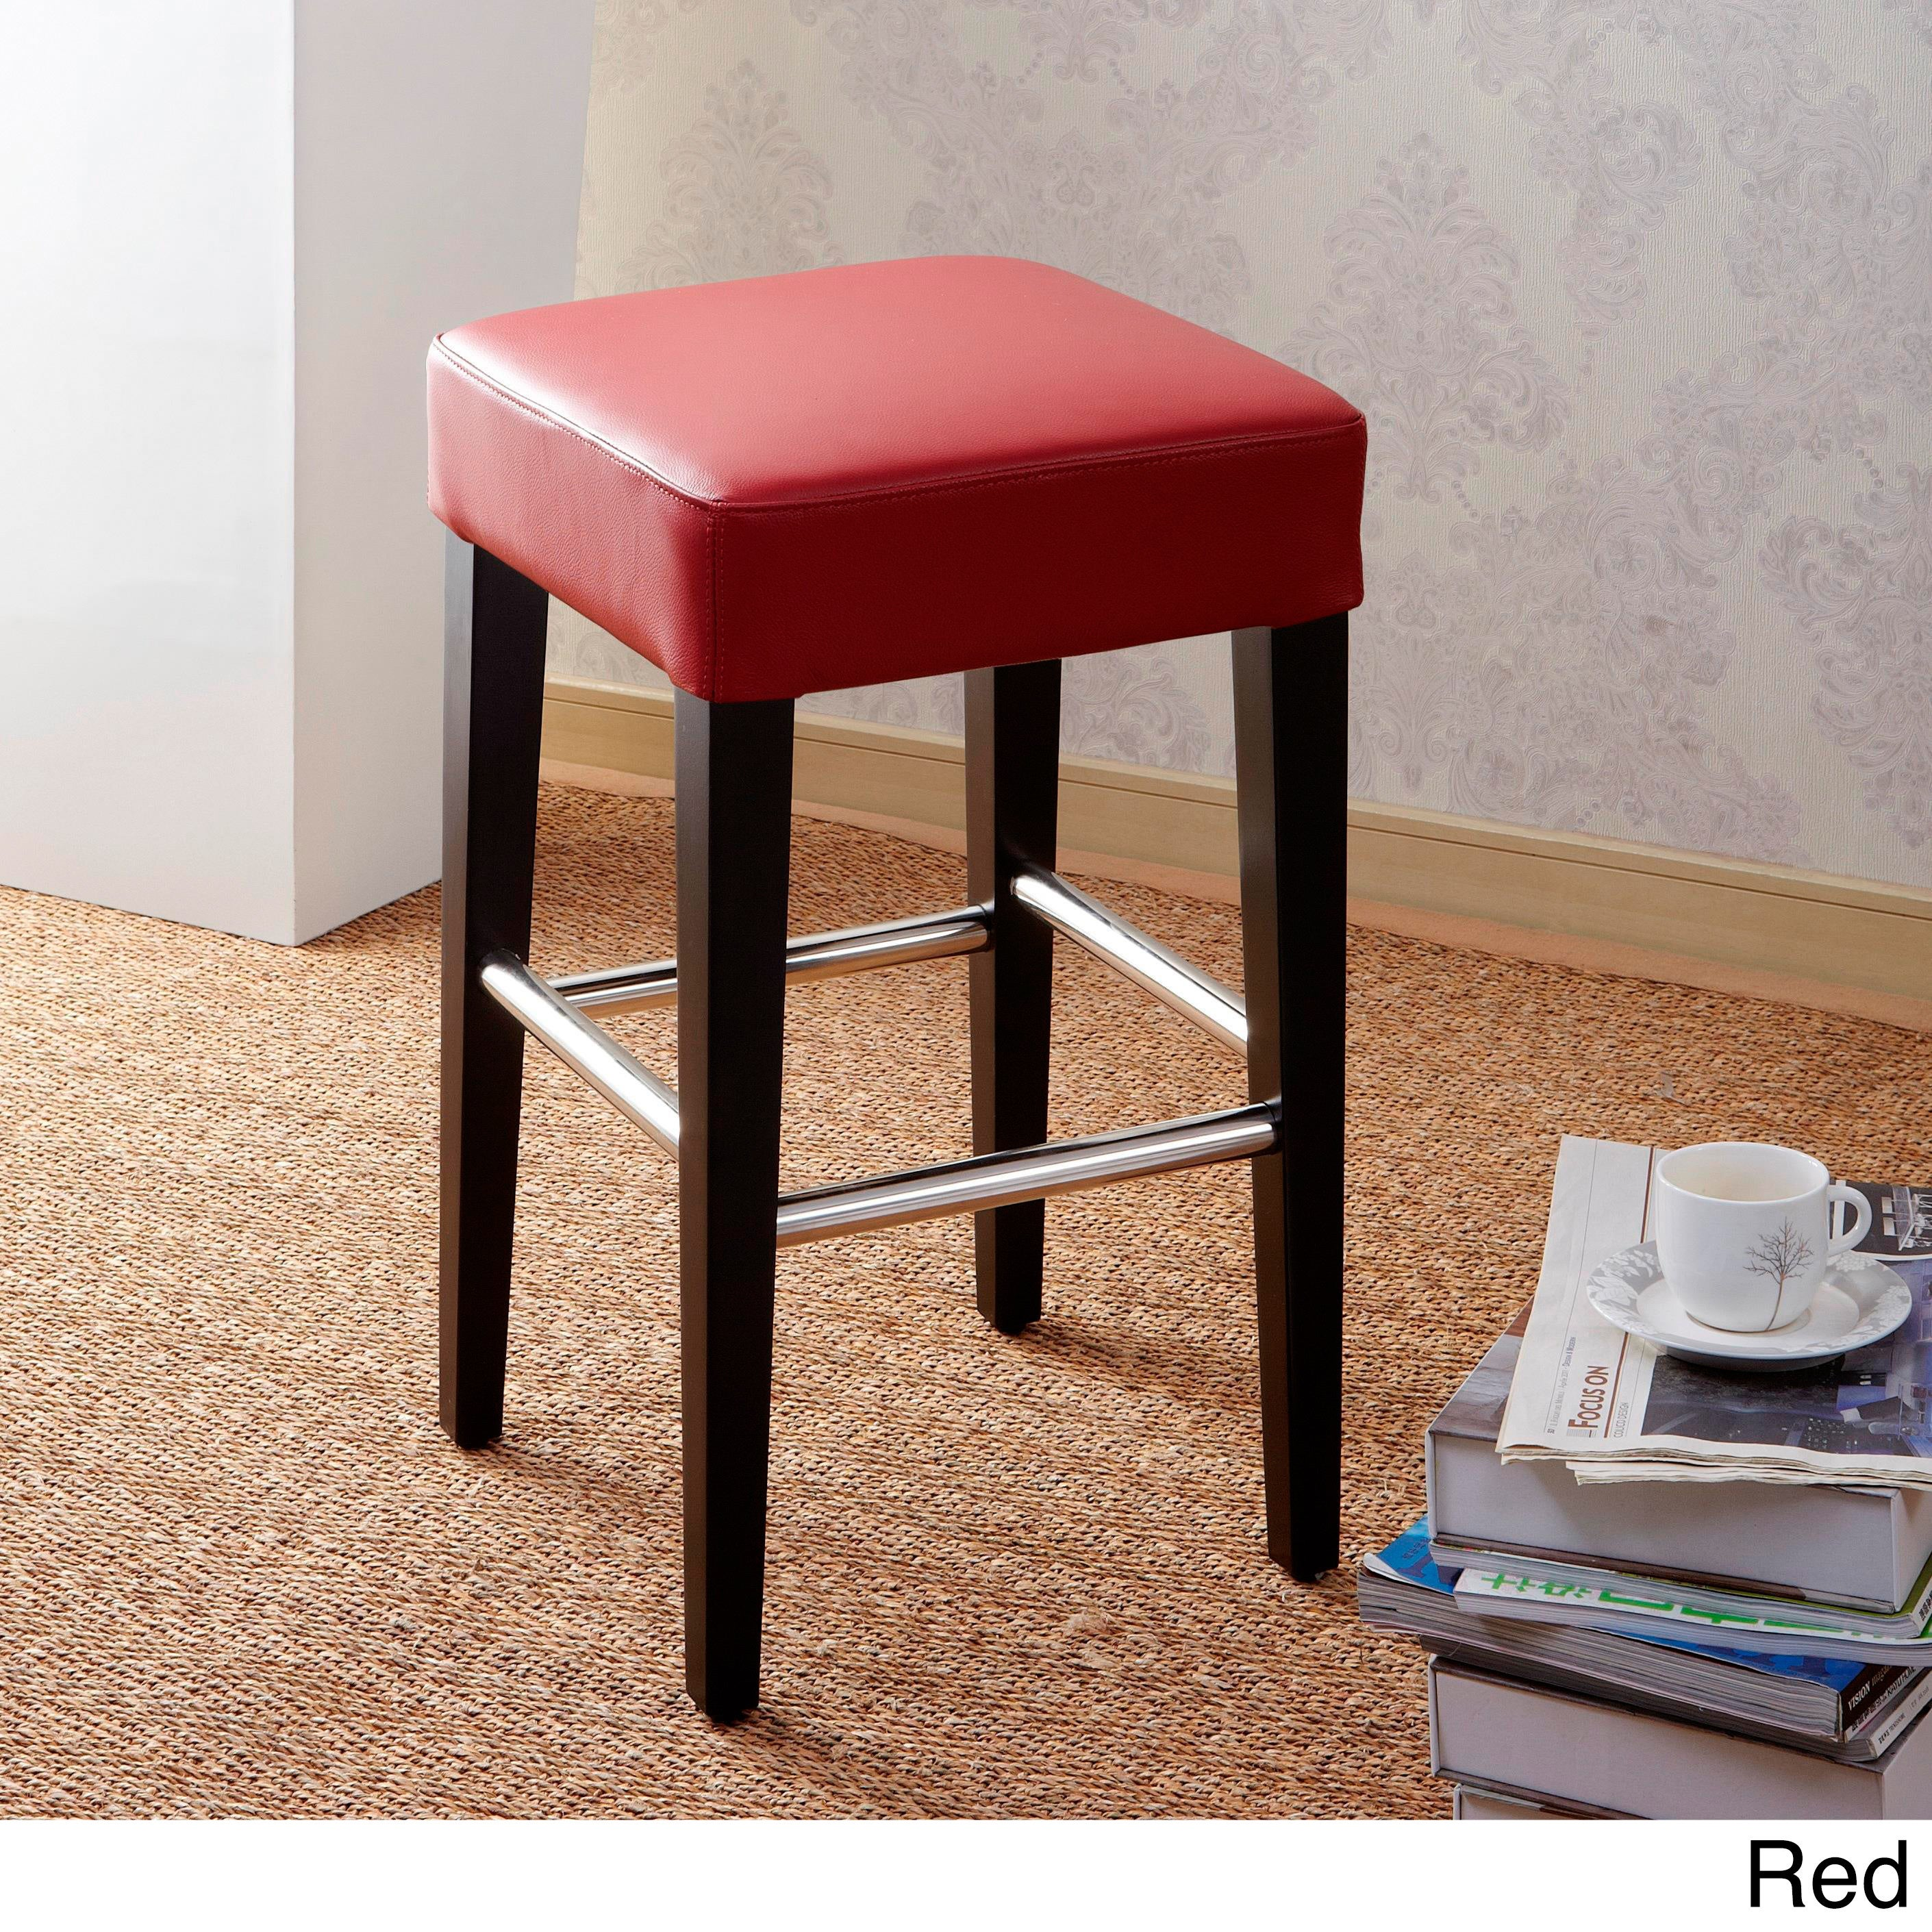 Brilliant 24 Inch Backless Counter High Stool In Genuine Leather Cjindustries Chair Design For Home Cjindustriesco